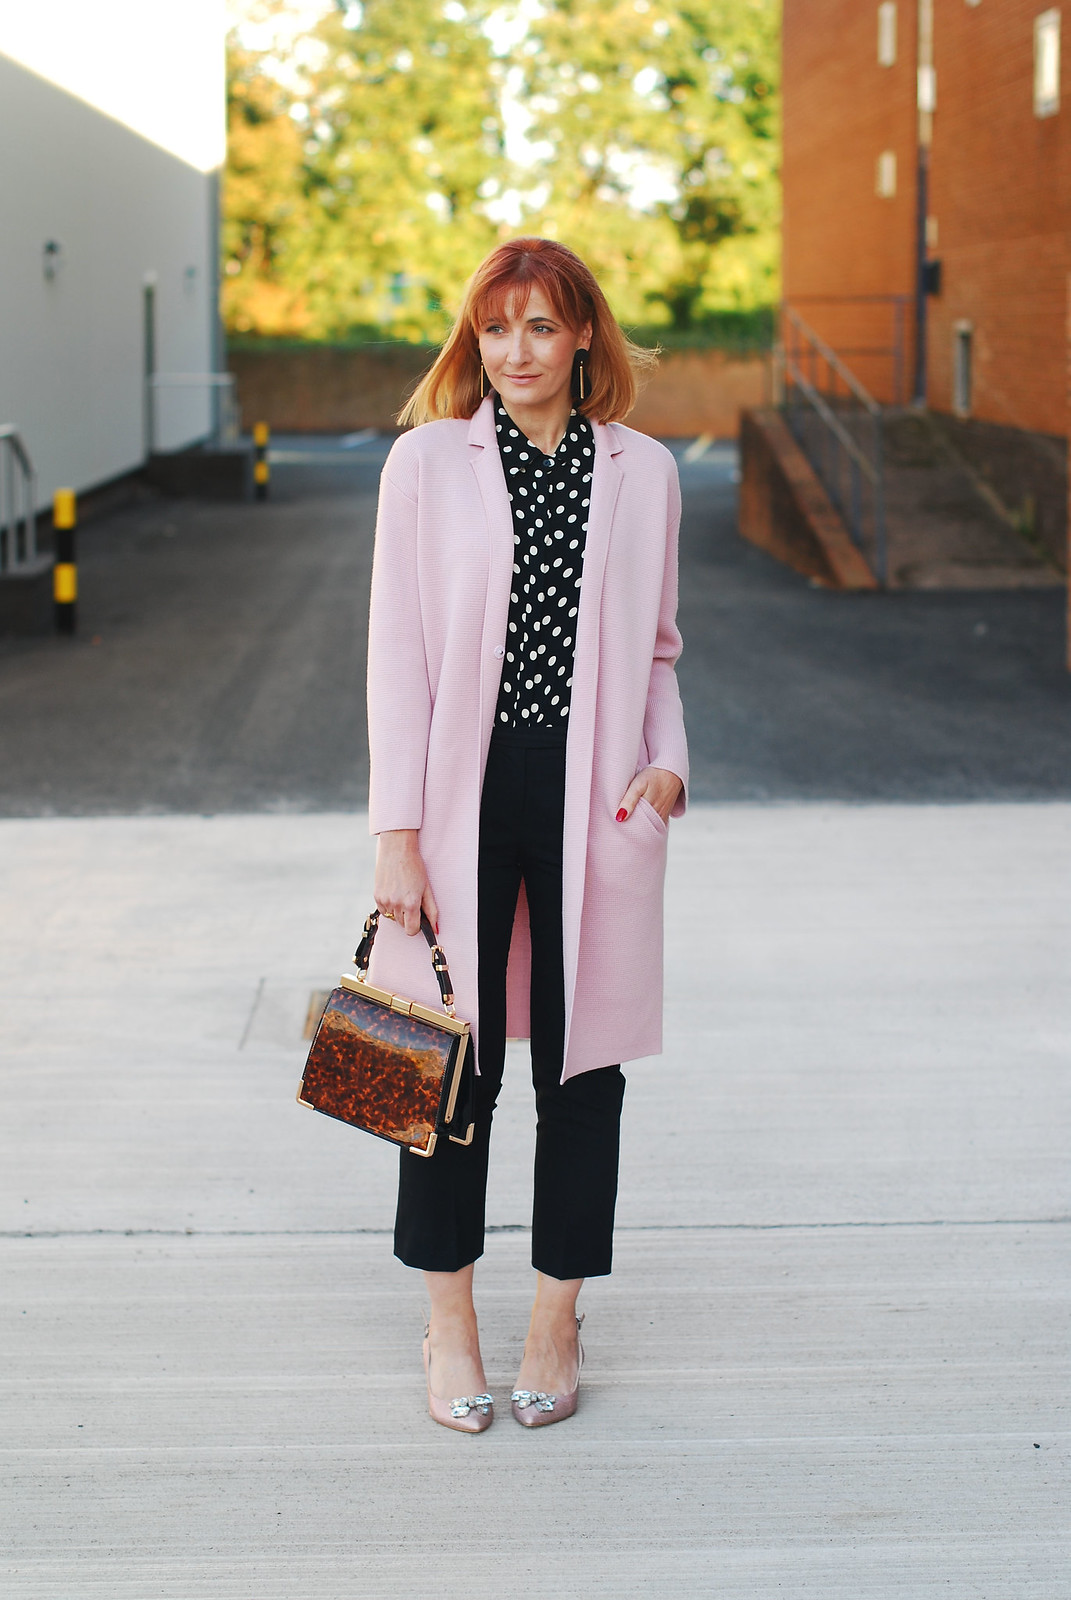 Retro 80s styling: Pink Winser coatigan and black and white polka dots, block heel pink glitter shoes | Not Dressed As Lamb, over 40 style